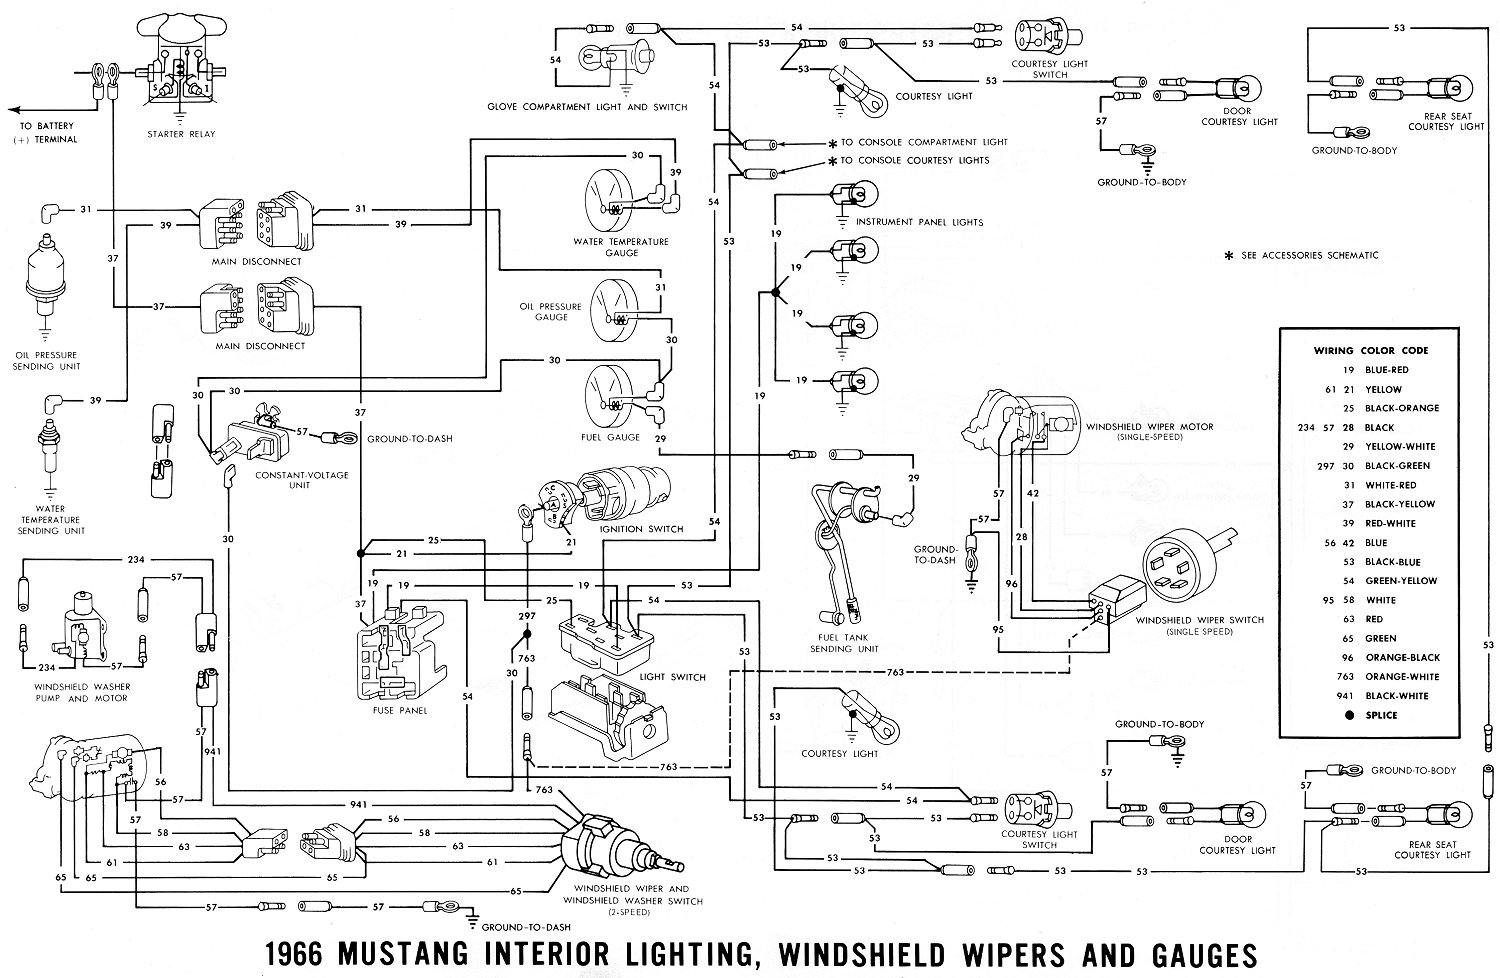 66inter1 1966 mustang wiring diagrams average joe restoration 1966 mustang wiring diagrams at creativeand.co